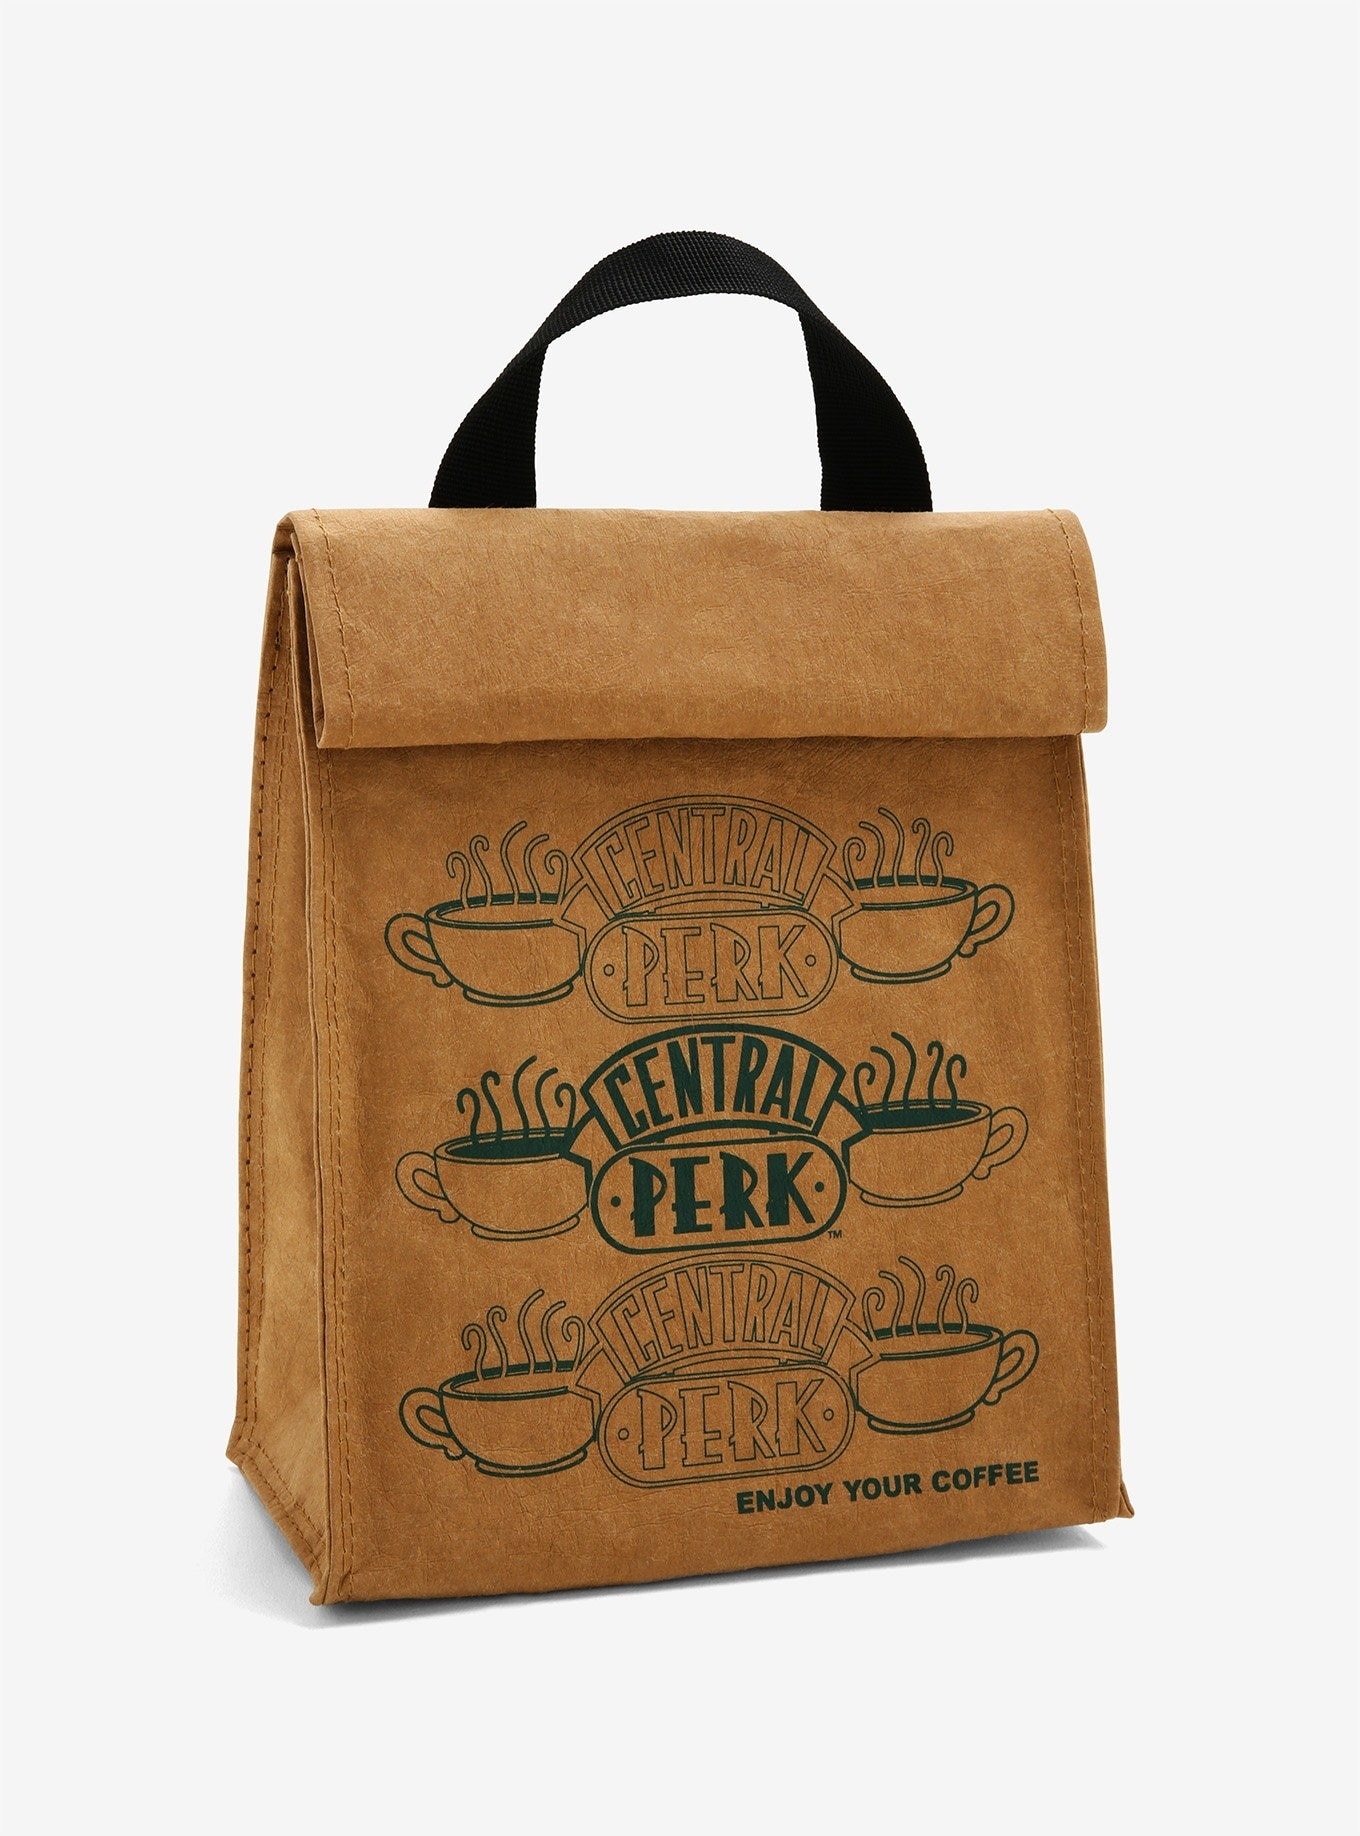 a lunch bag that looks like a brown bag with the central perk logo on it